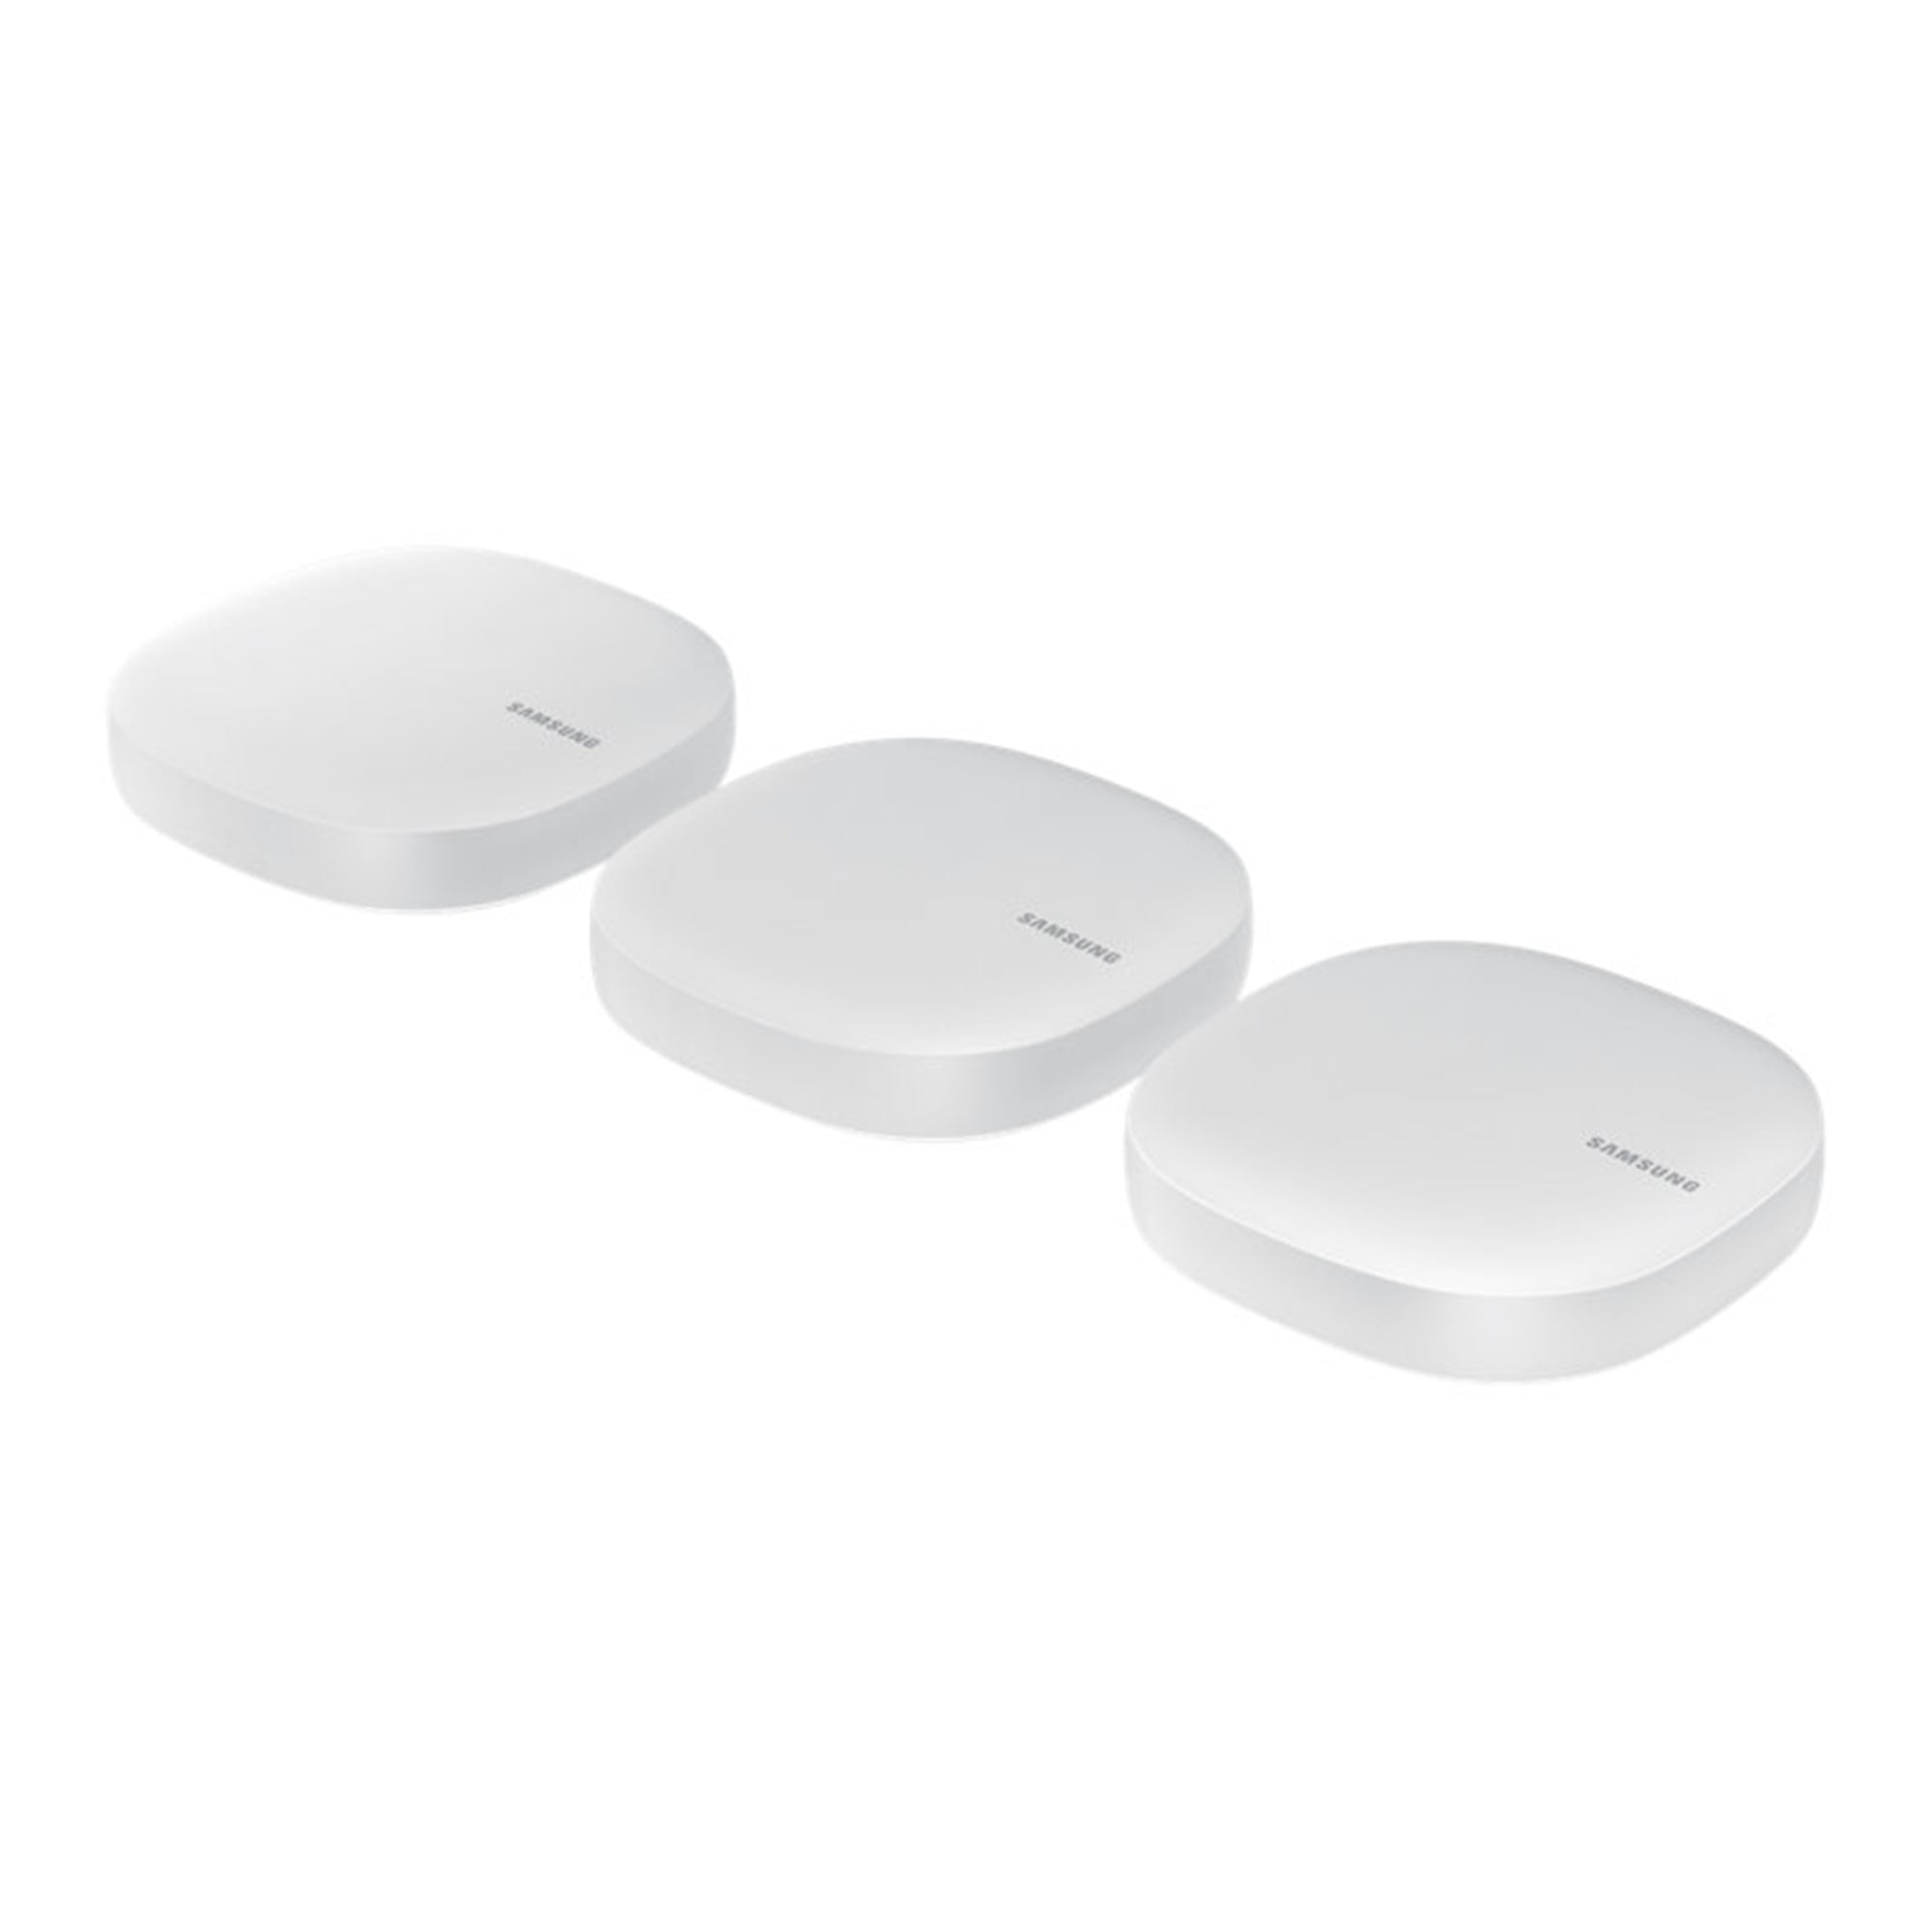 Samsung Connect Home AC1300 Smart Wi-Fi System, 3-Pack - ET-WV520K